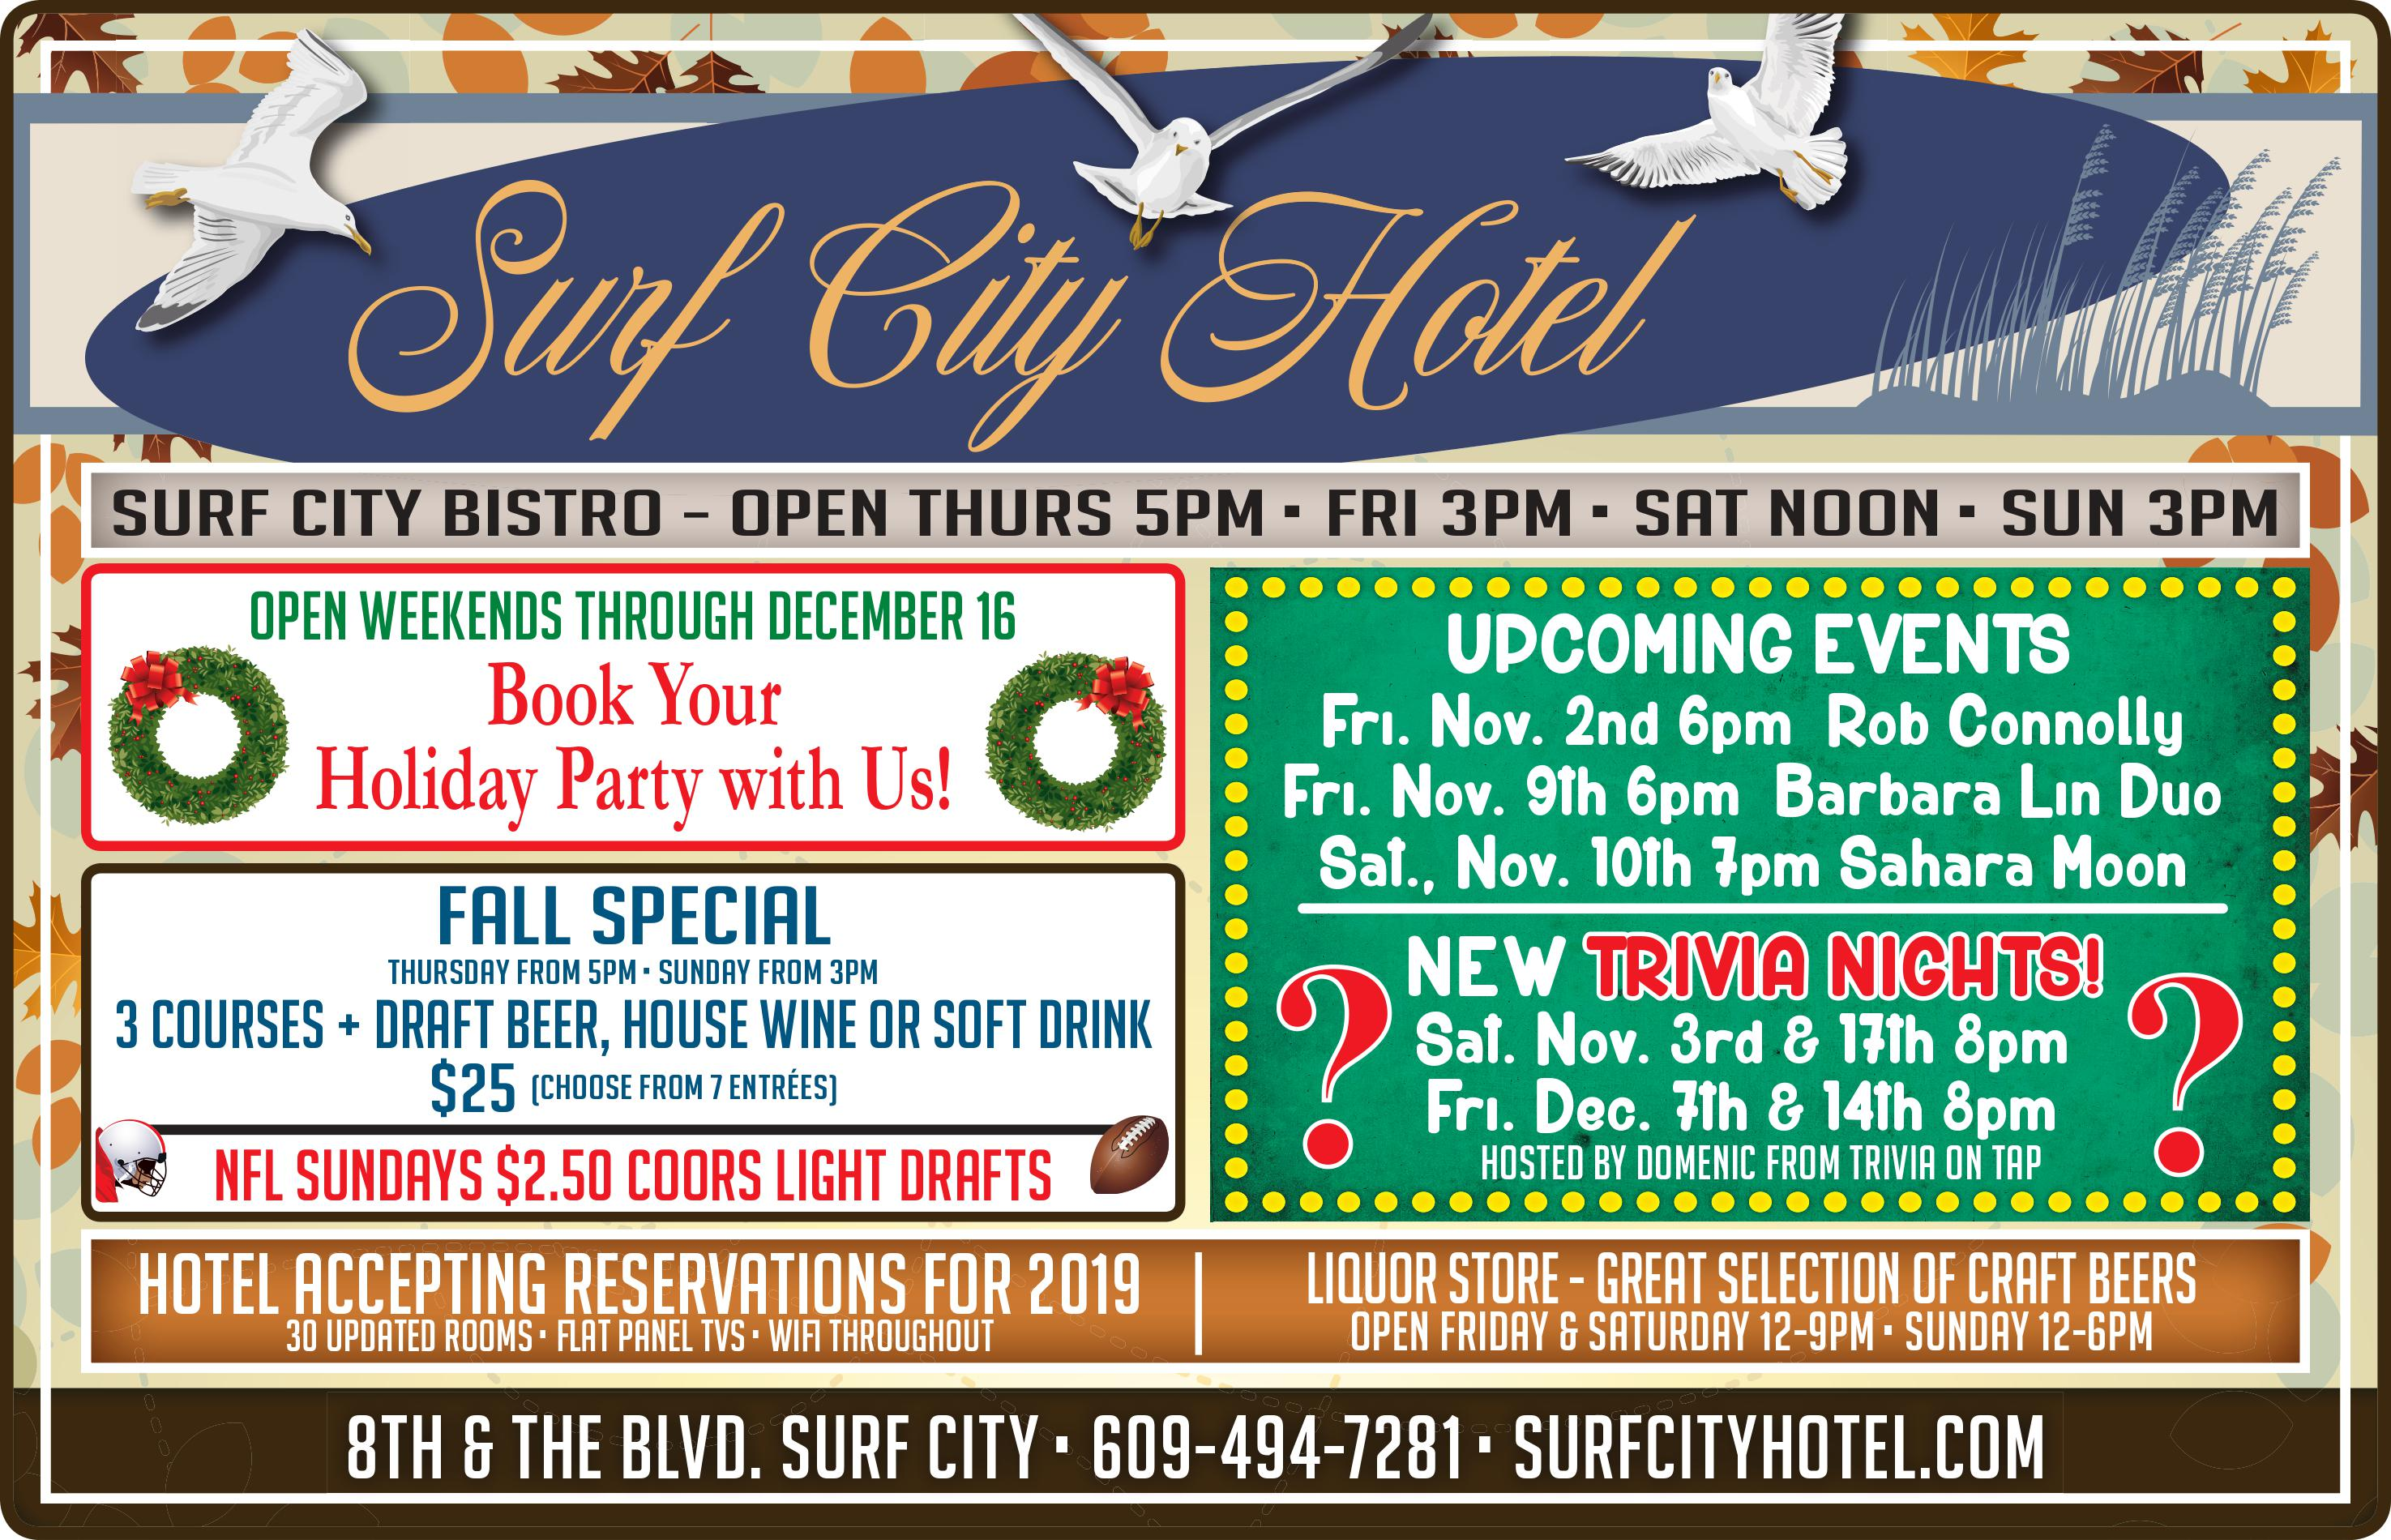 Surf City Hotel events 2018